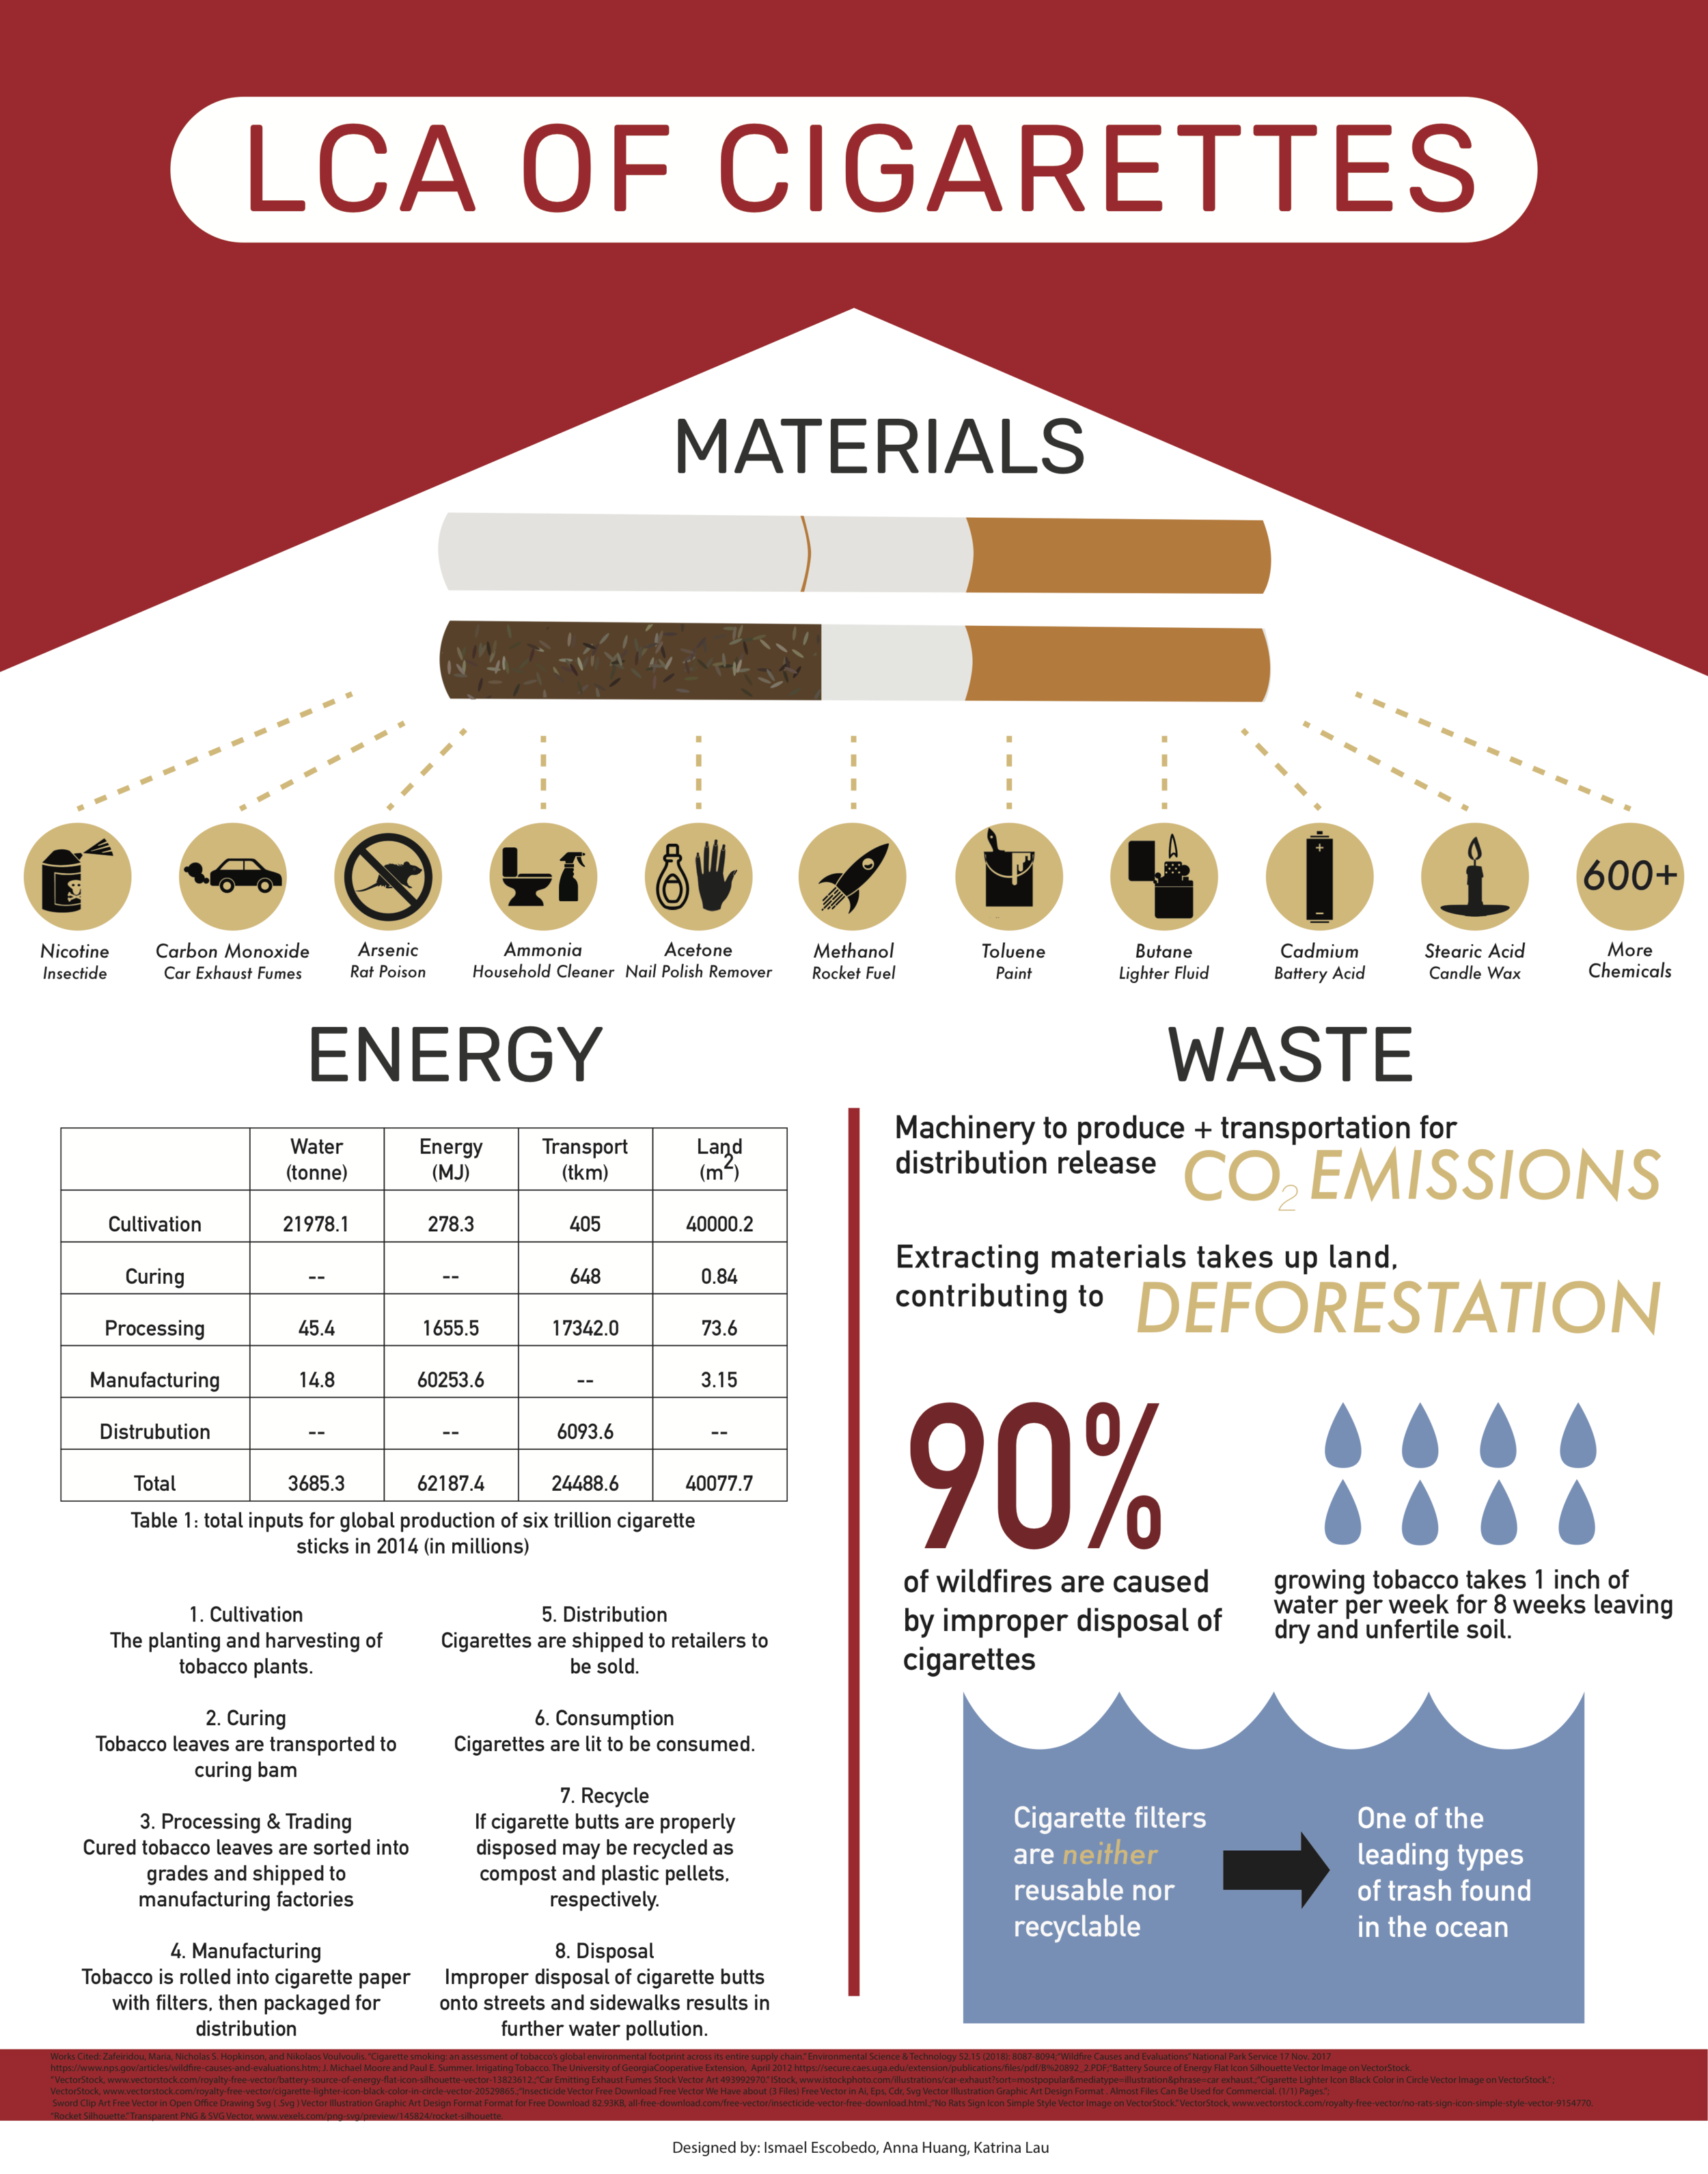 Life Cycle of Cigarettes